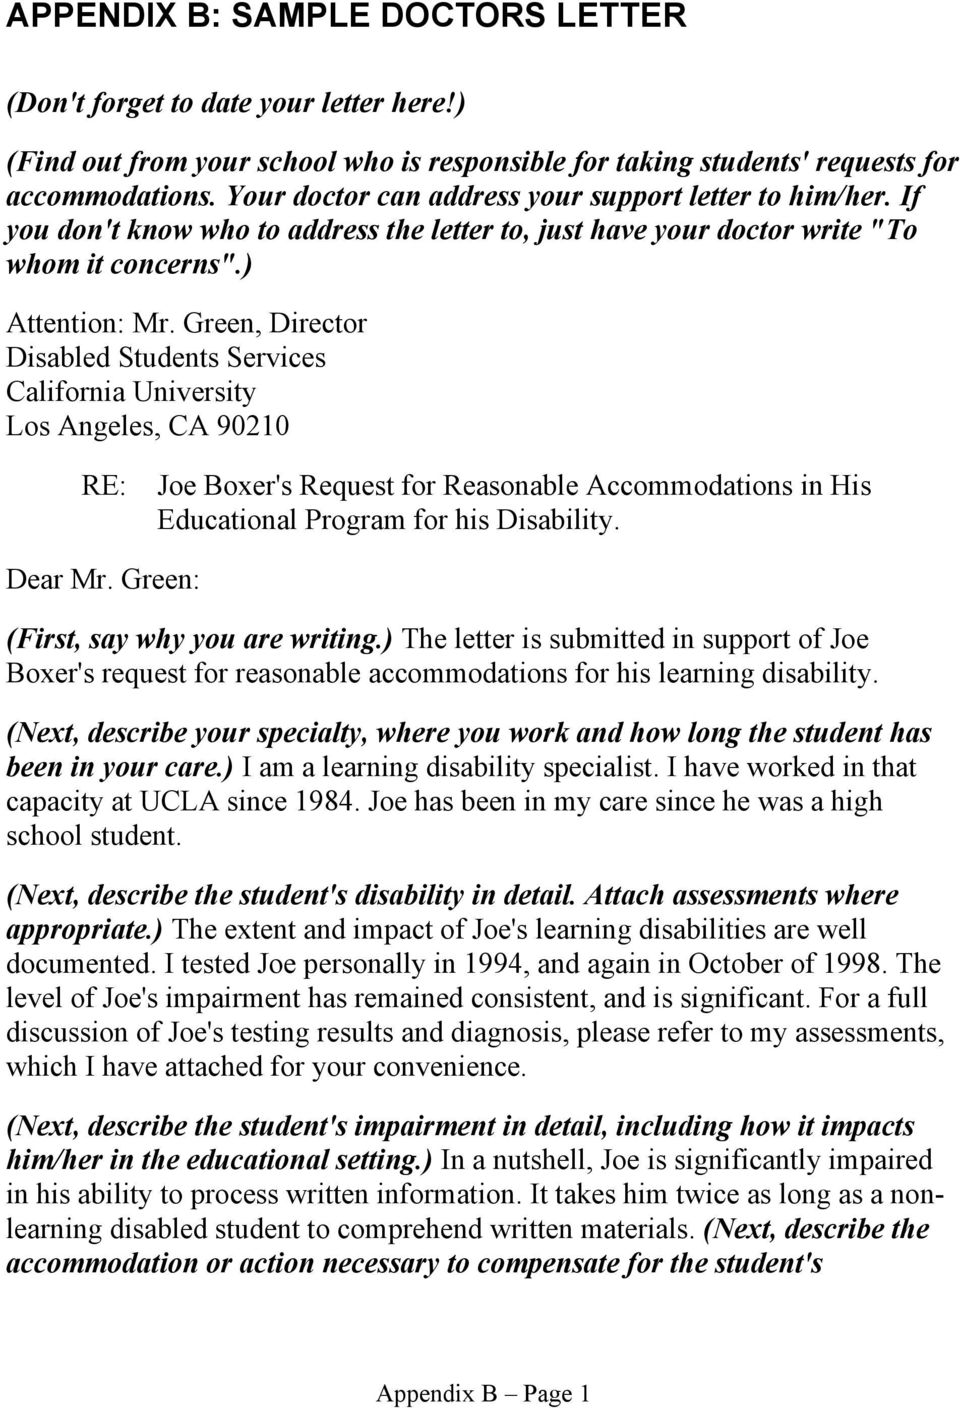 Green, Director Disabled Students Services California University Los Angeles, CA 90210 RE: Joe Boxer's Request for Reasonable Accommodations in His Educational Program for his Disability. Dear Mr.